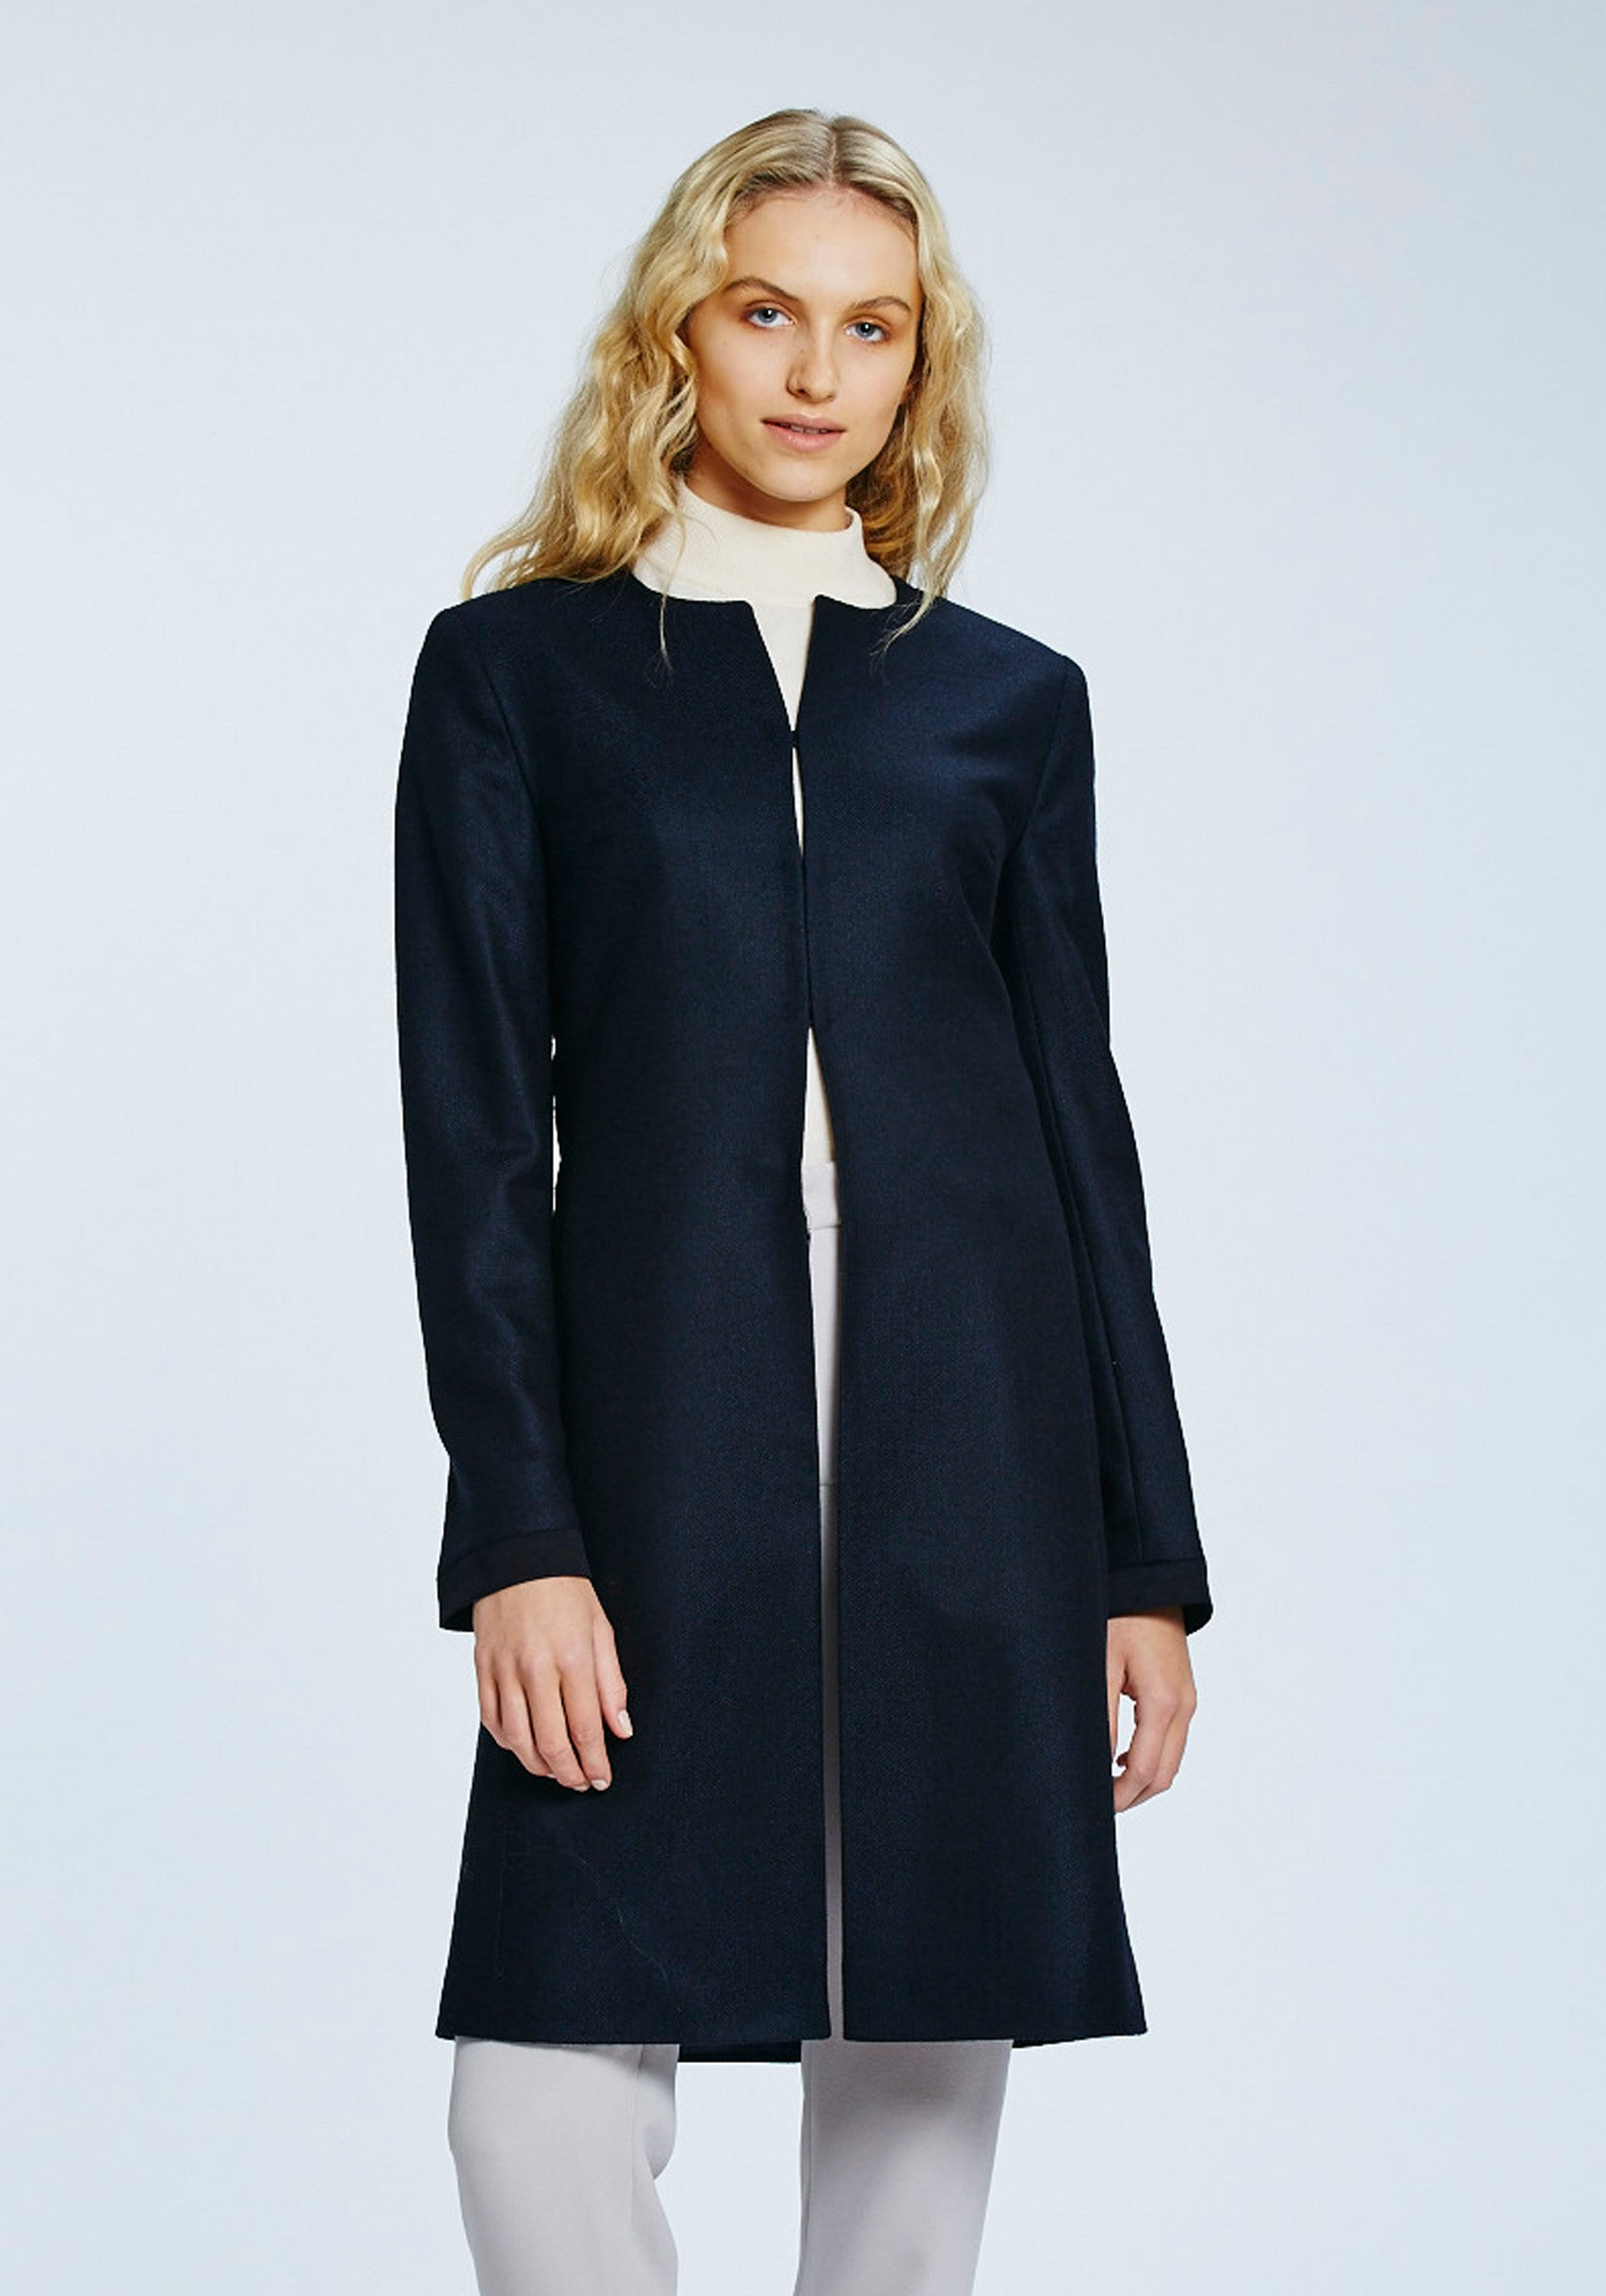 Tallulah Coat in Navy Herringbone